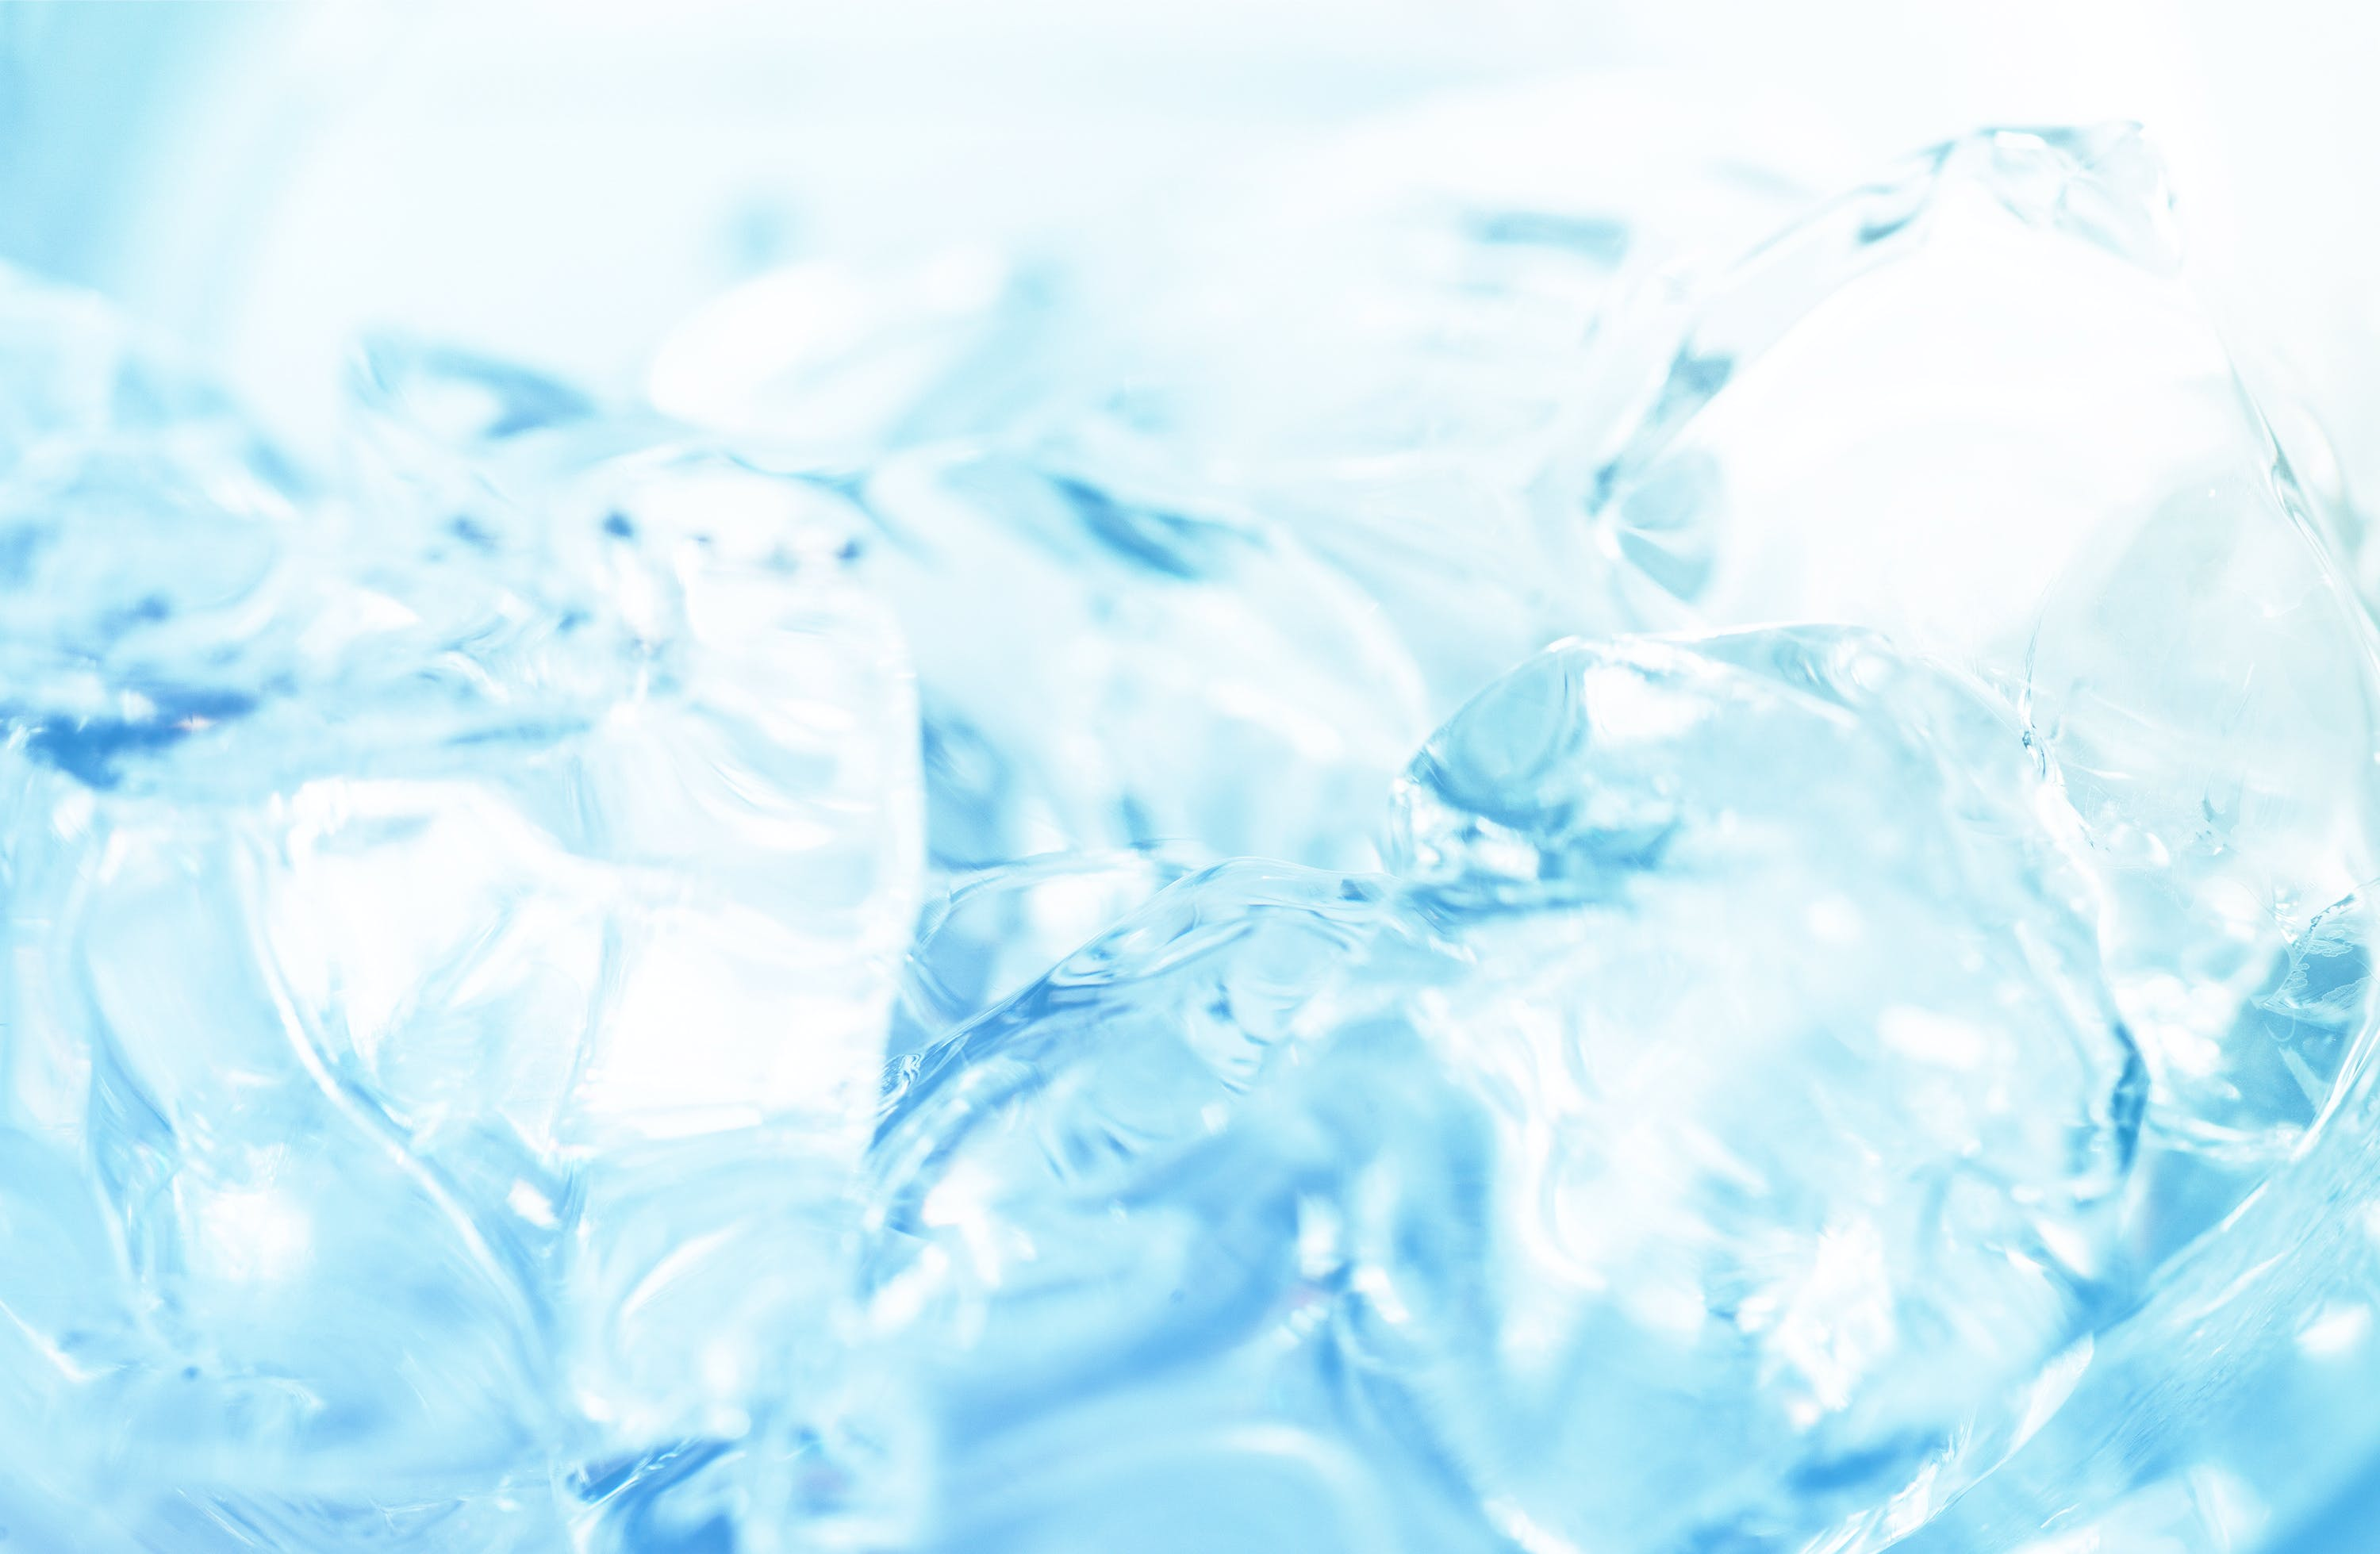 Free stock photo of cold, water, blue, drink